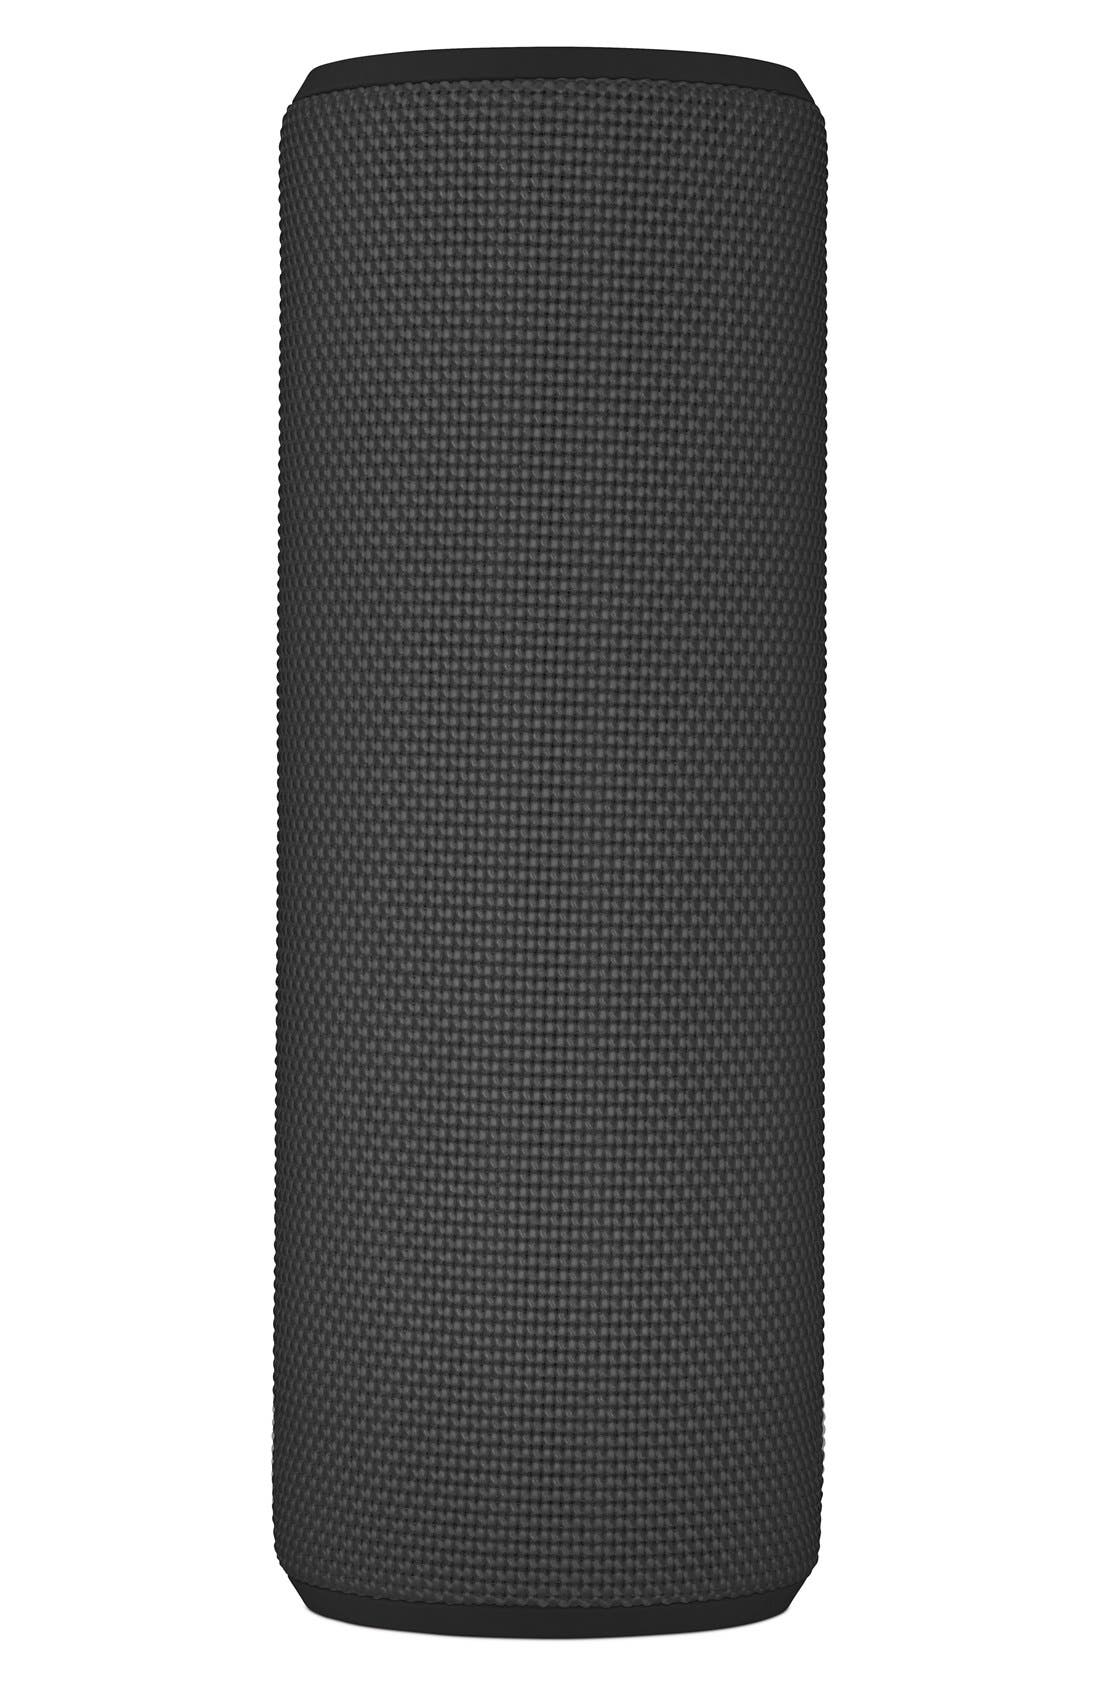 Boom 2 Wireless Bluetooth<sup>®</sup> Speaker,                             Alternate thumbnail 2, color,                             001